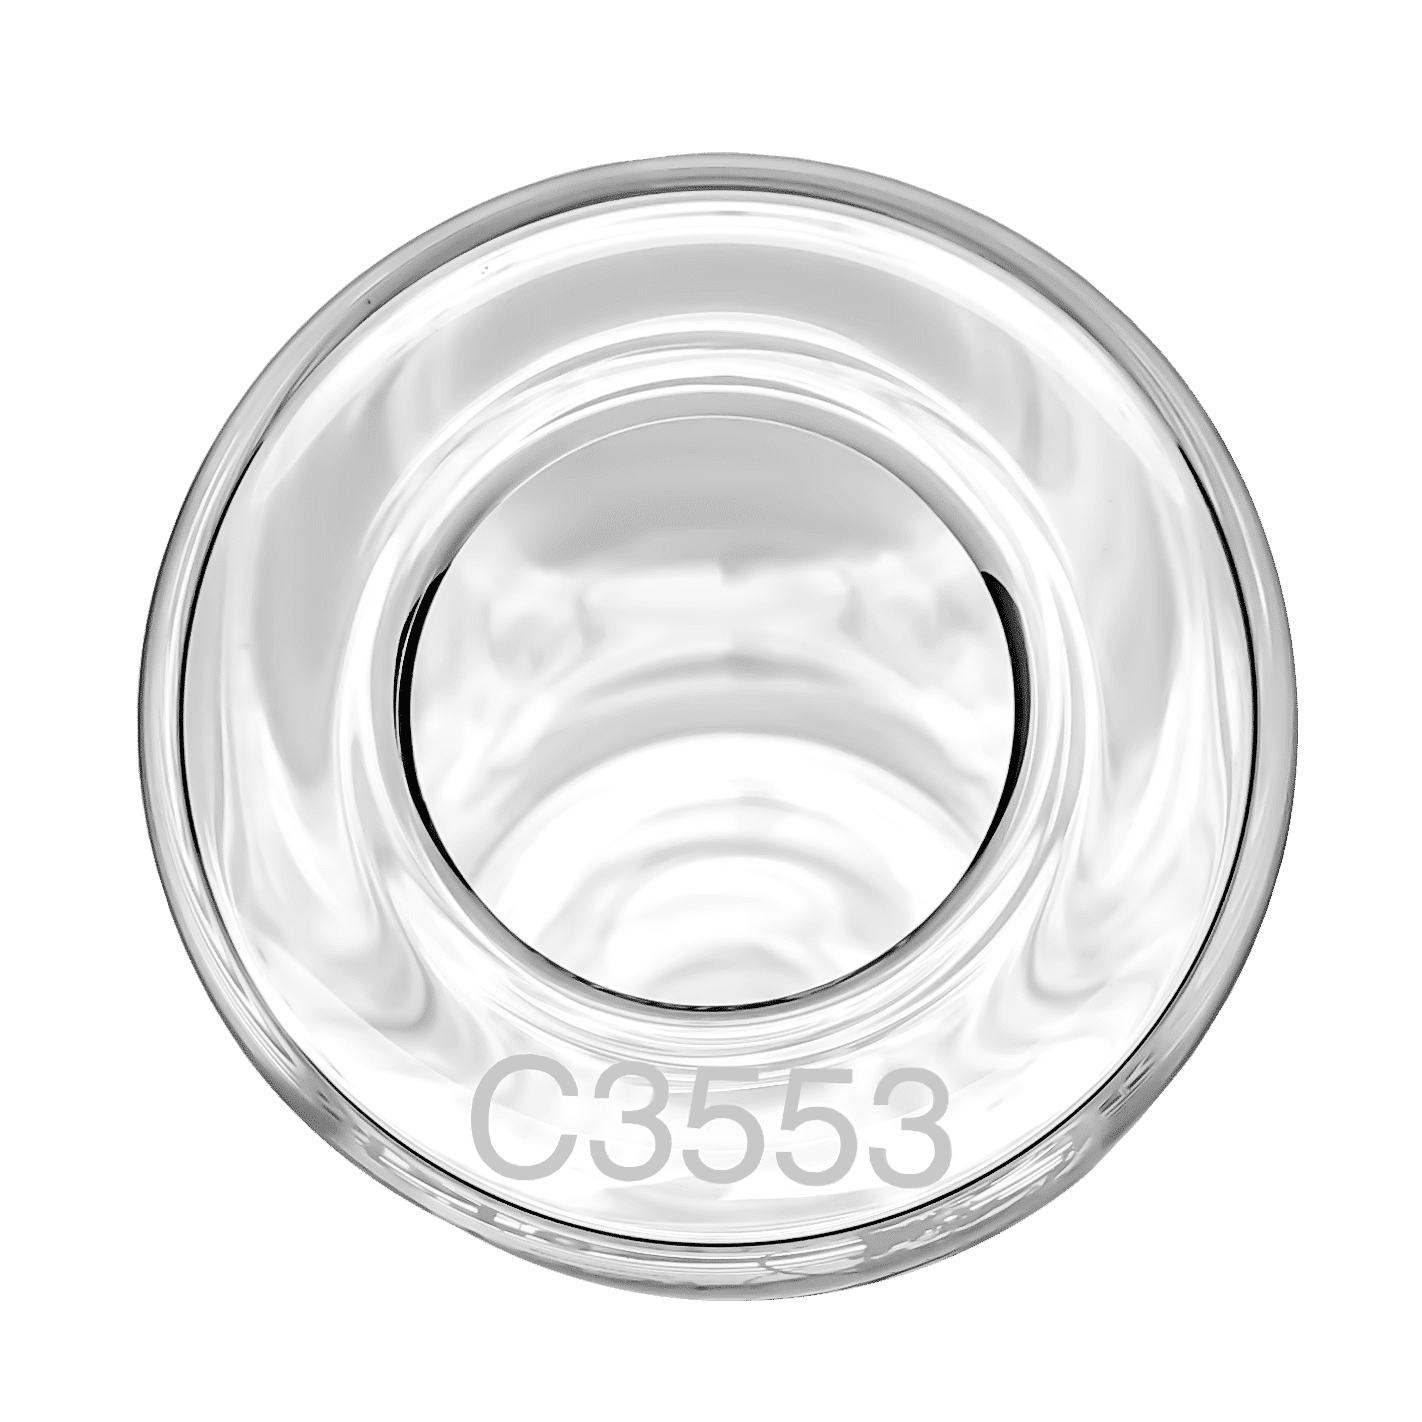 Image of a Gordon Technical RTFO bottle showing its serial number on the rim of the glass